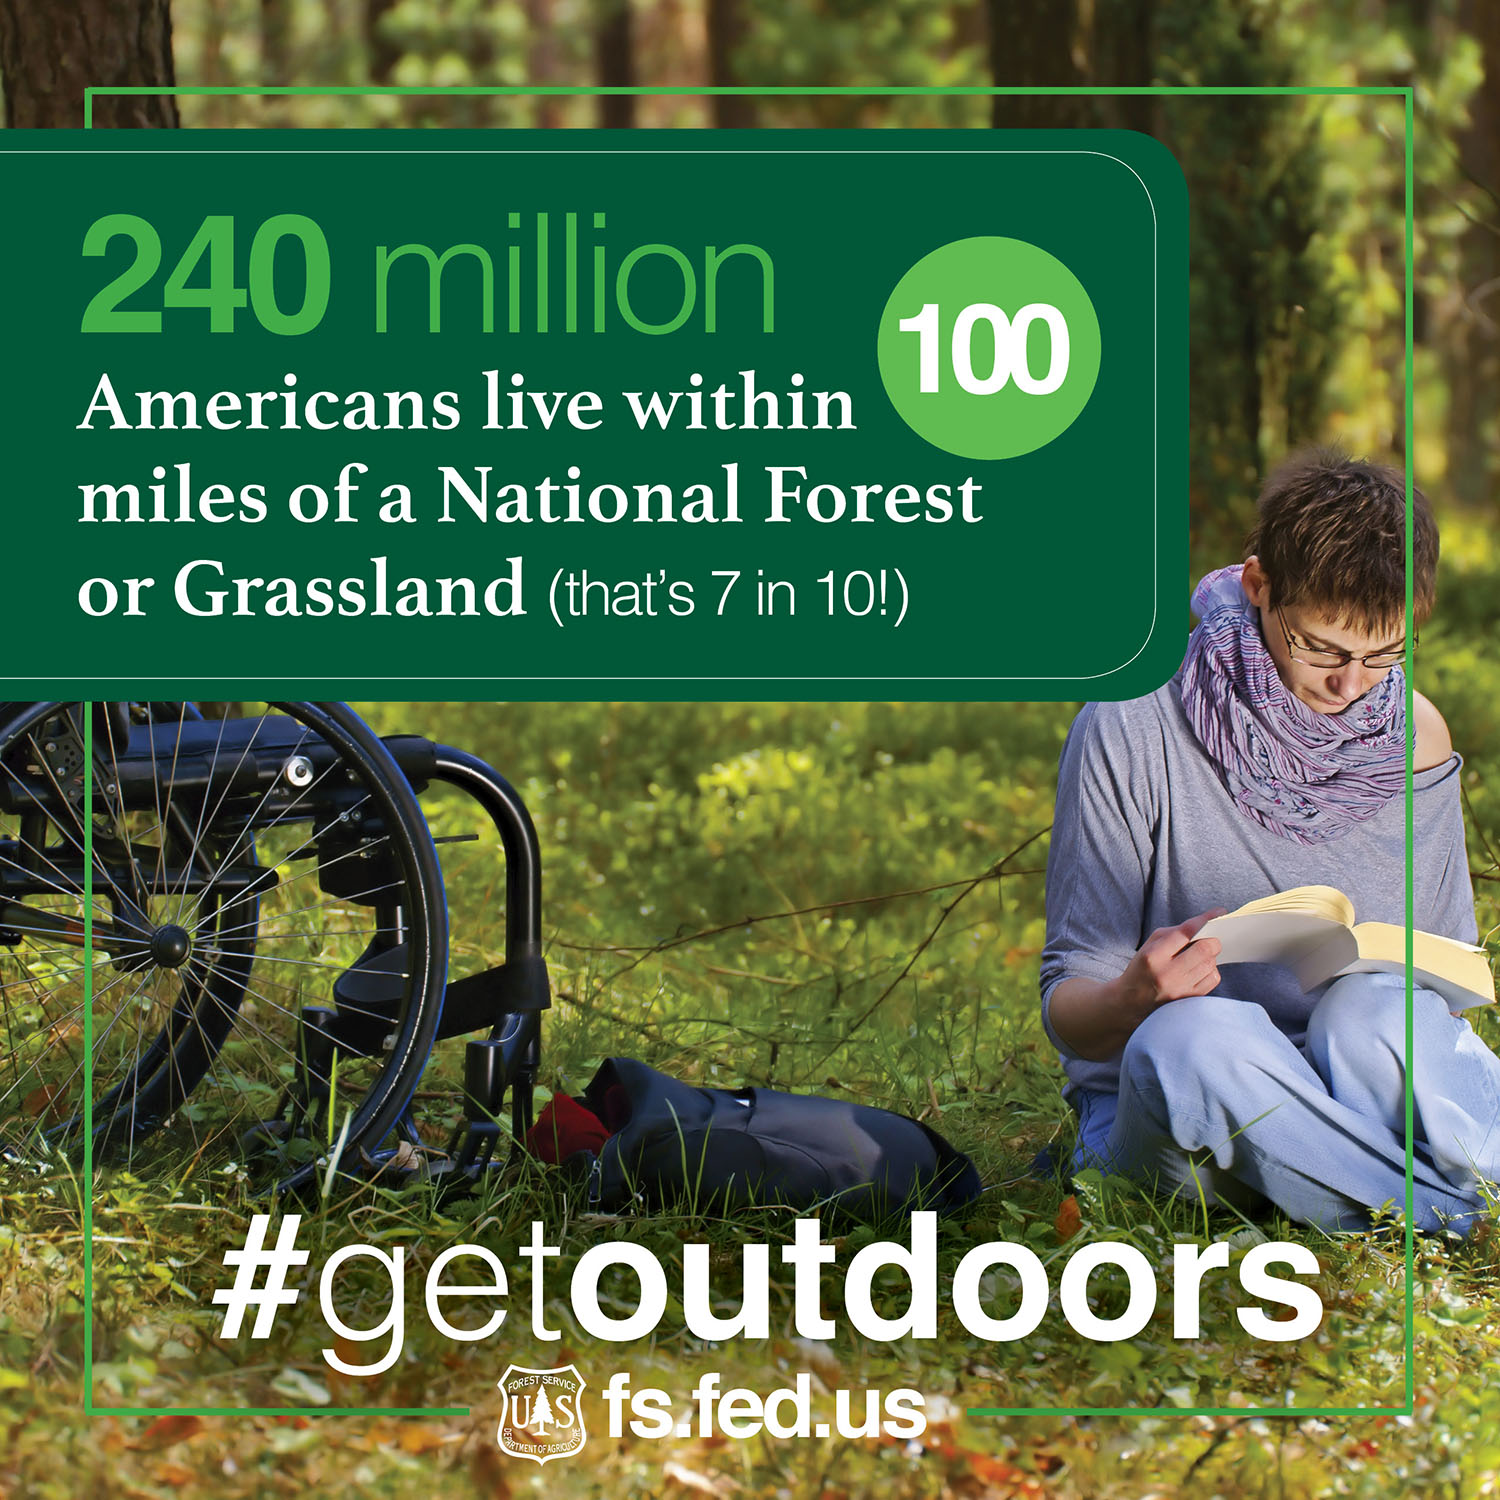 Forest Service Chief Tom Tidwell encourages you to get outdoors this weekend. (U.S. Forest Service Photo Illustration)